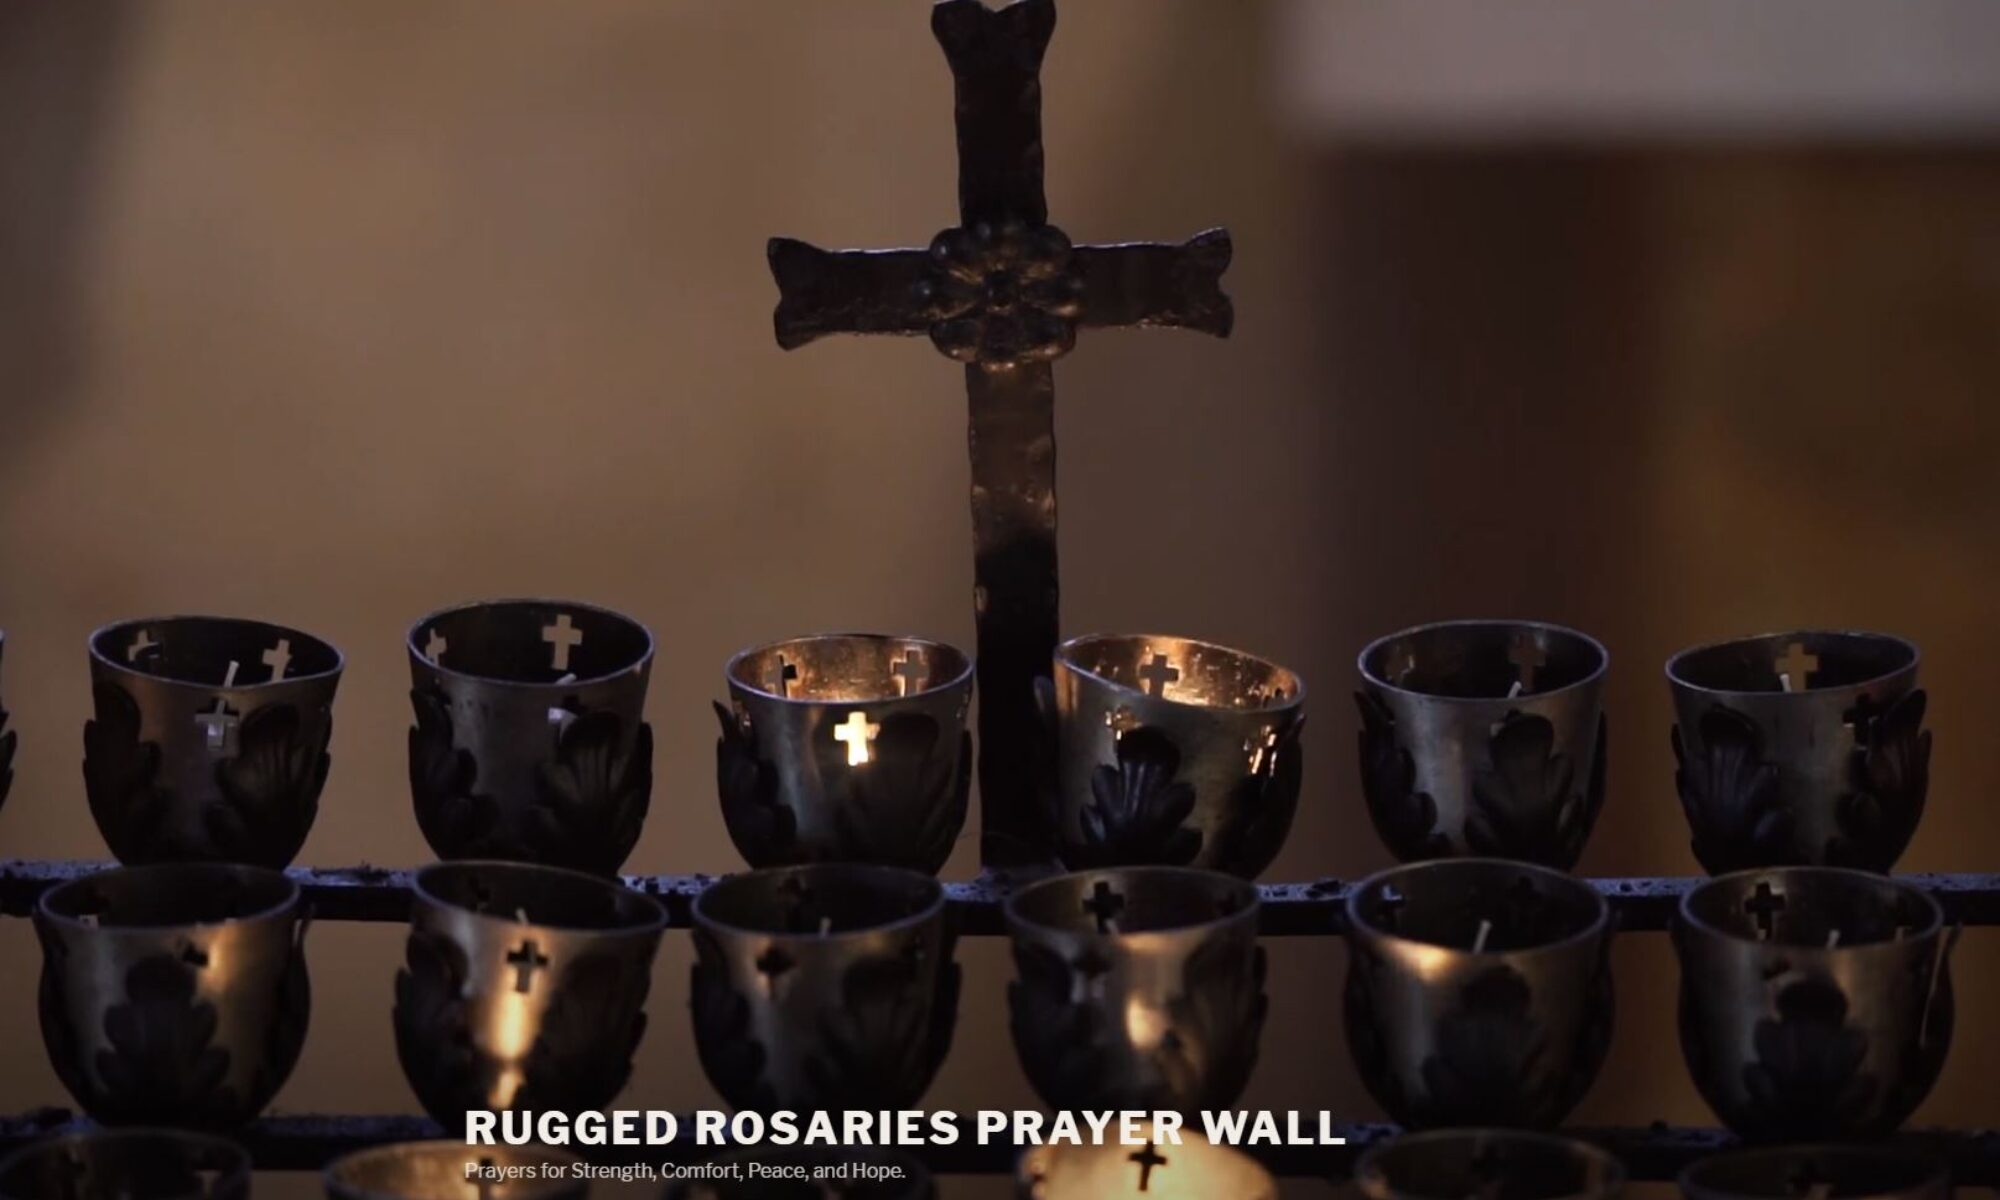 RUGGED ROSARIES Prayer wall